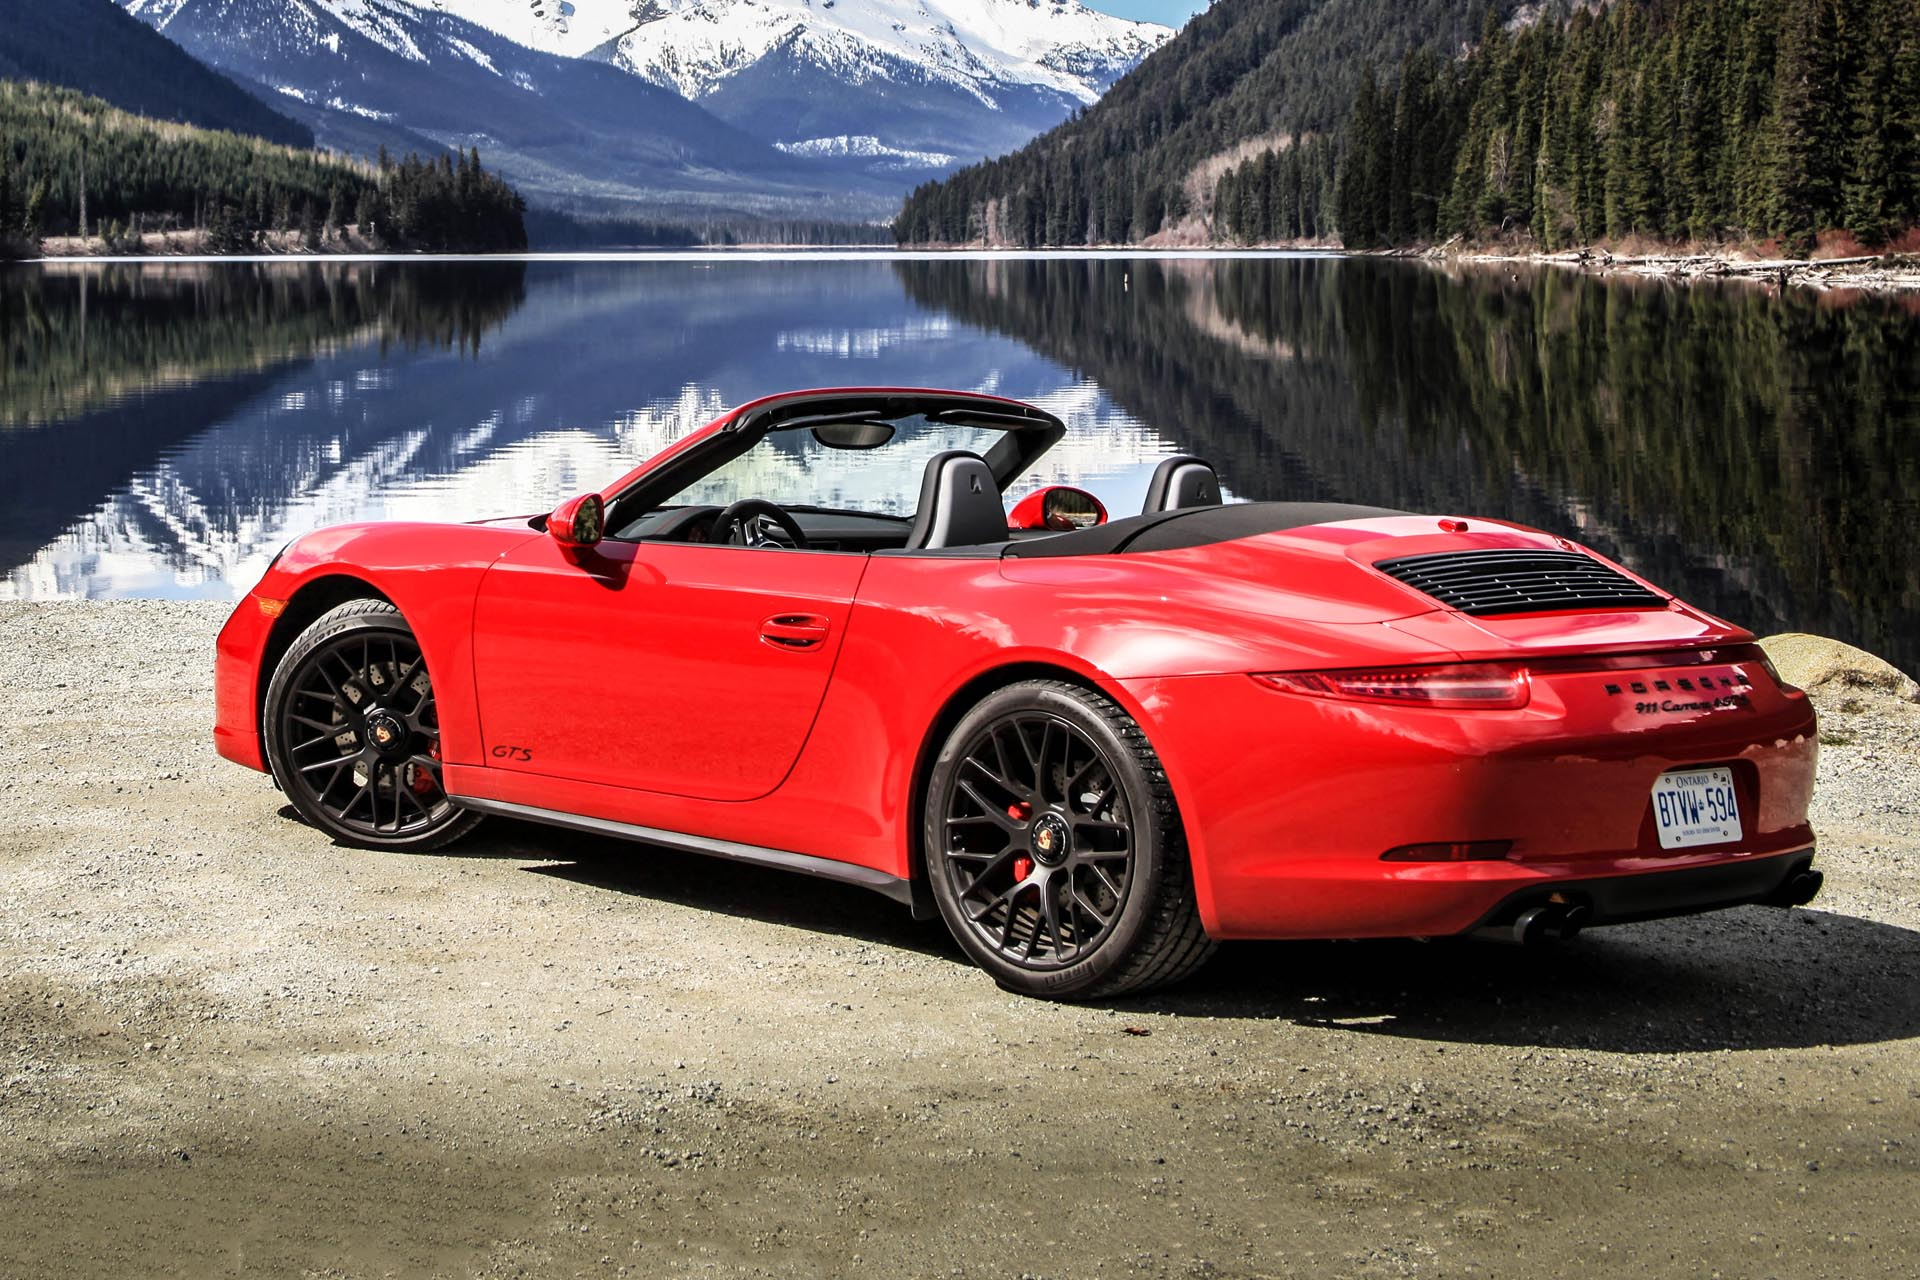 2015 porsche 911 carrera 4 cabriolet gts. Black Bedroom Furniture Sets. Home Design Ideas